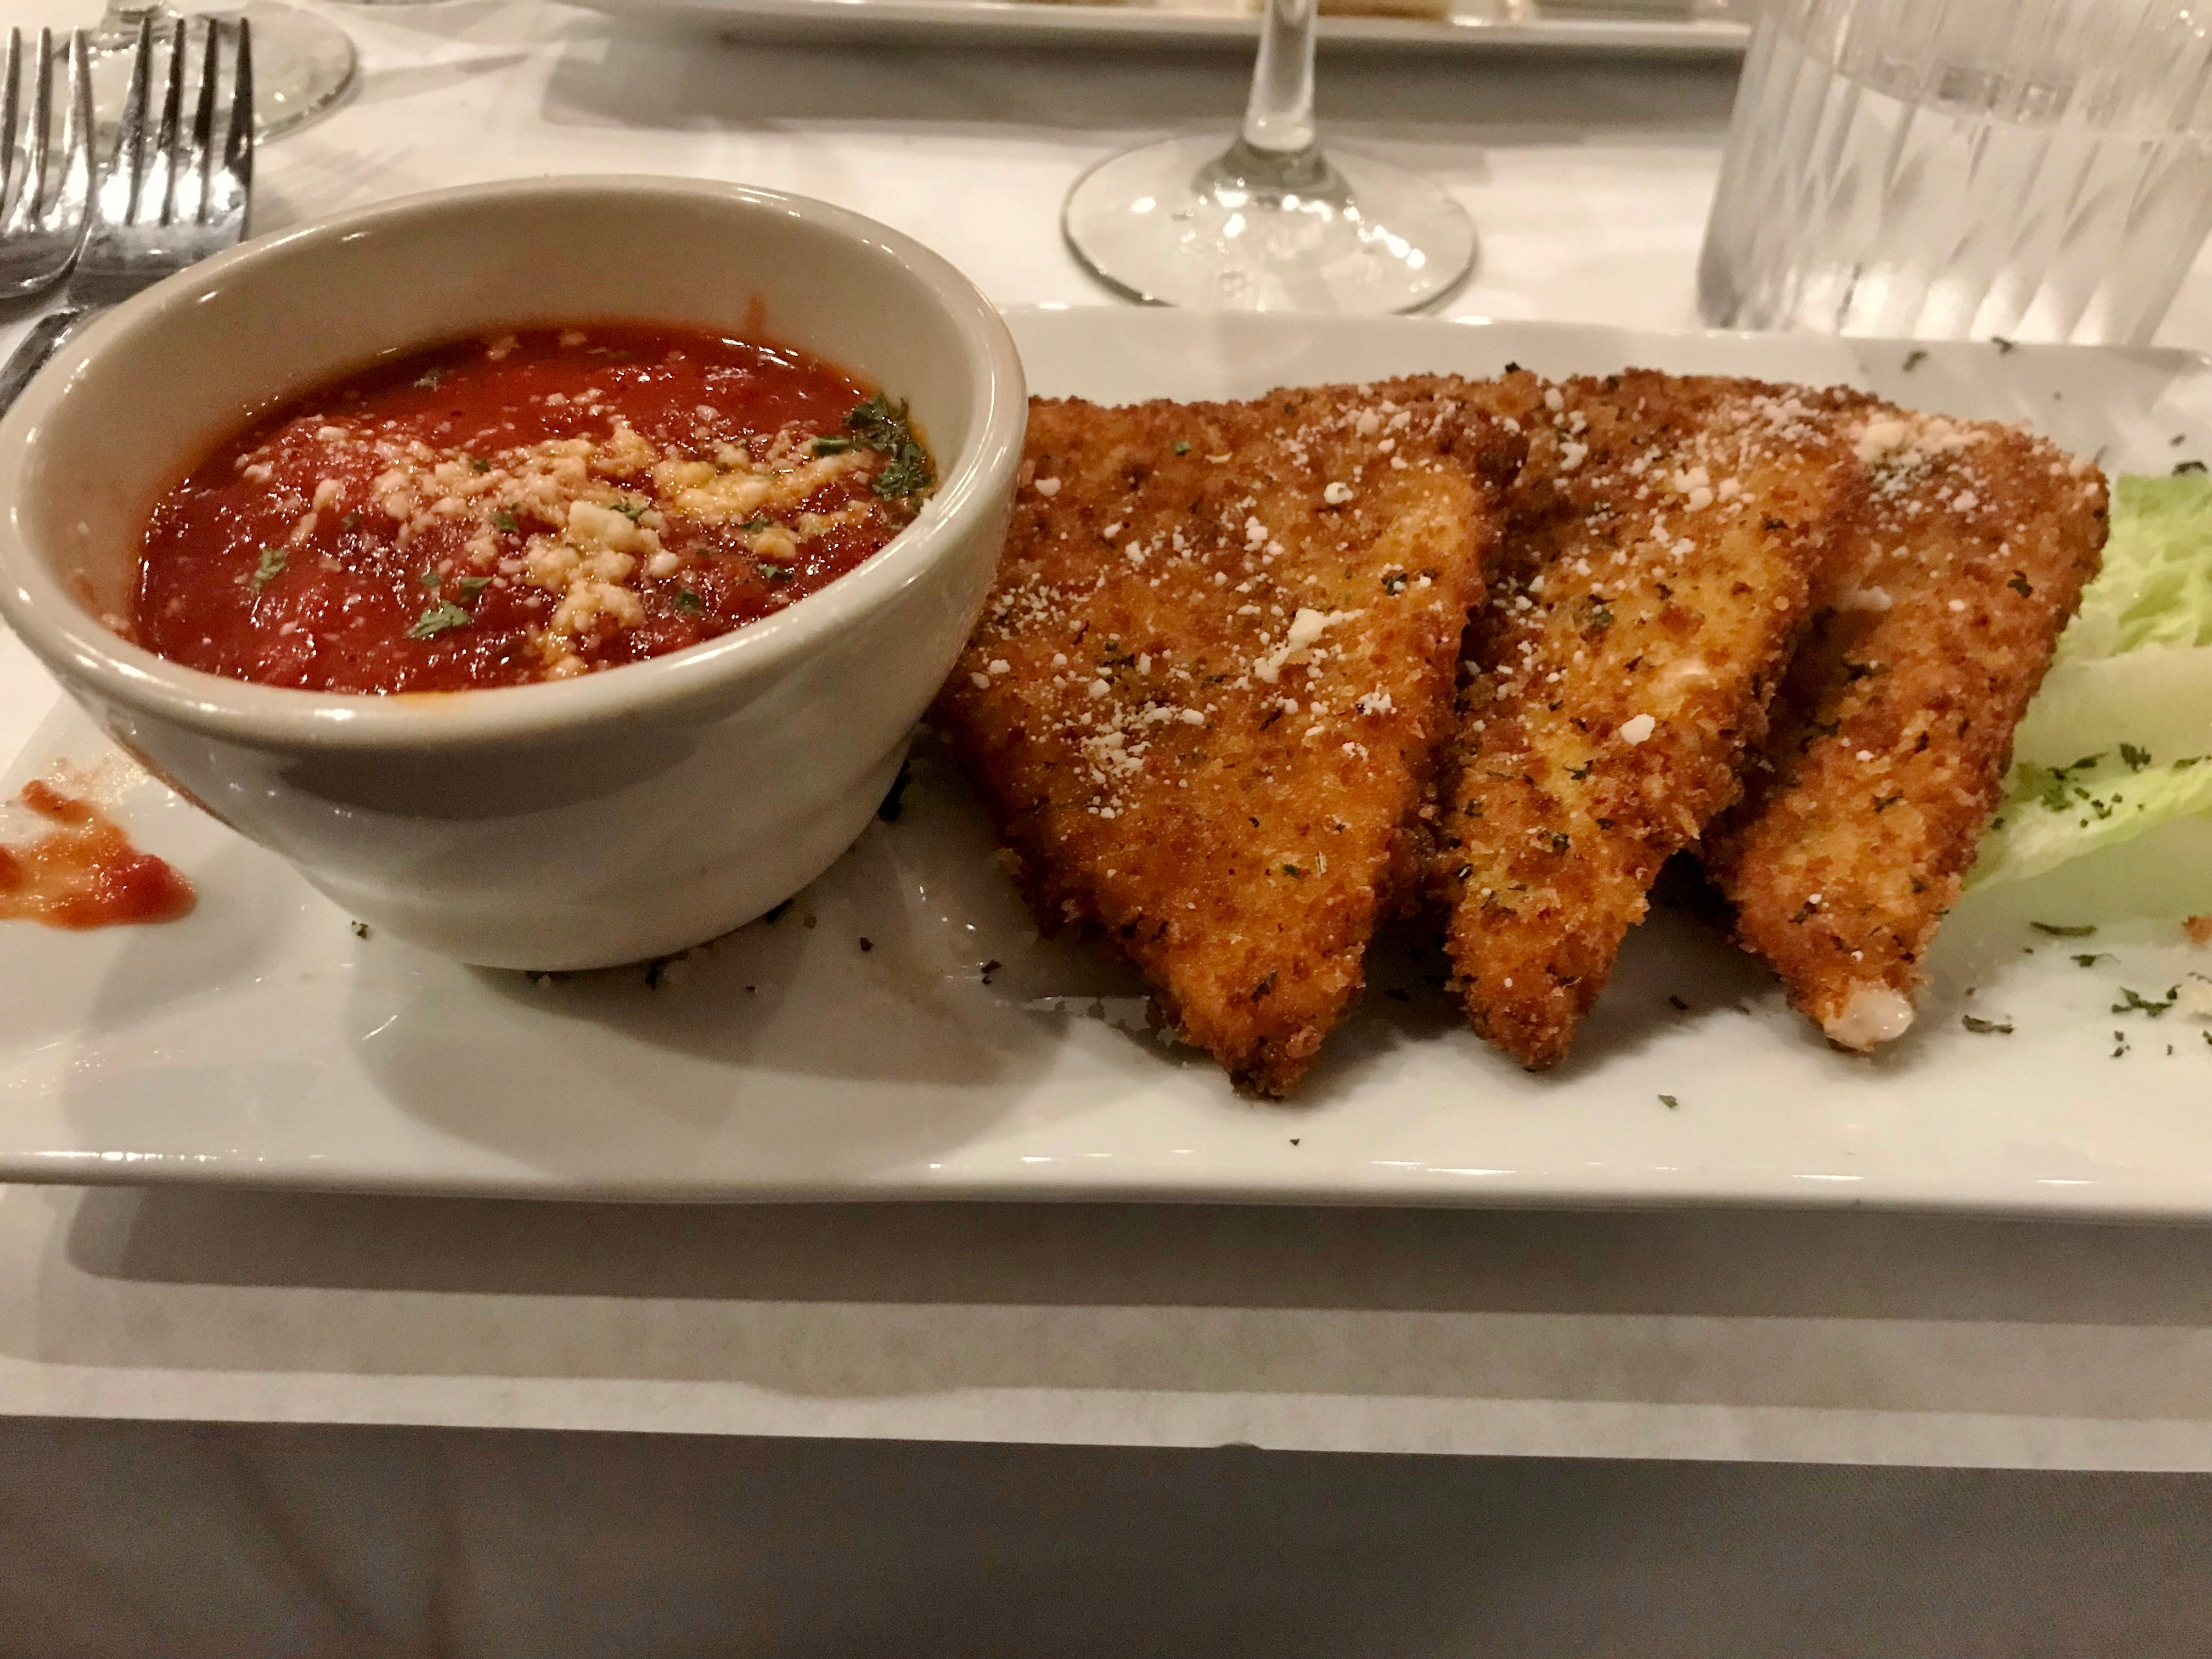 Mamma Mia's mozzarella fritte with marinara sauce was out of this world.